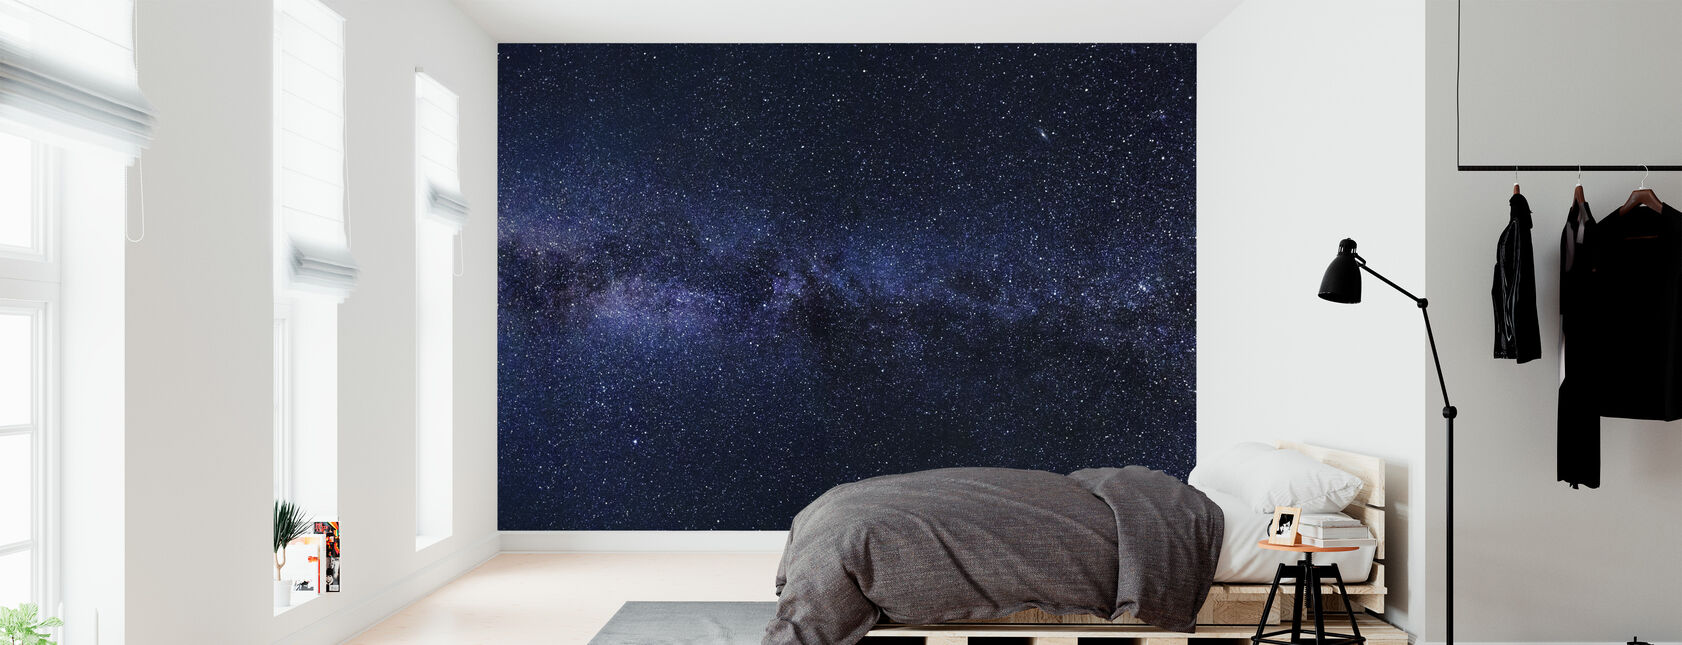 Mystical Starry Sky - Wallpaper - Bedroom